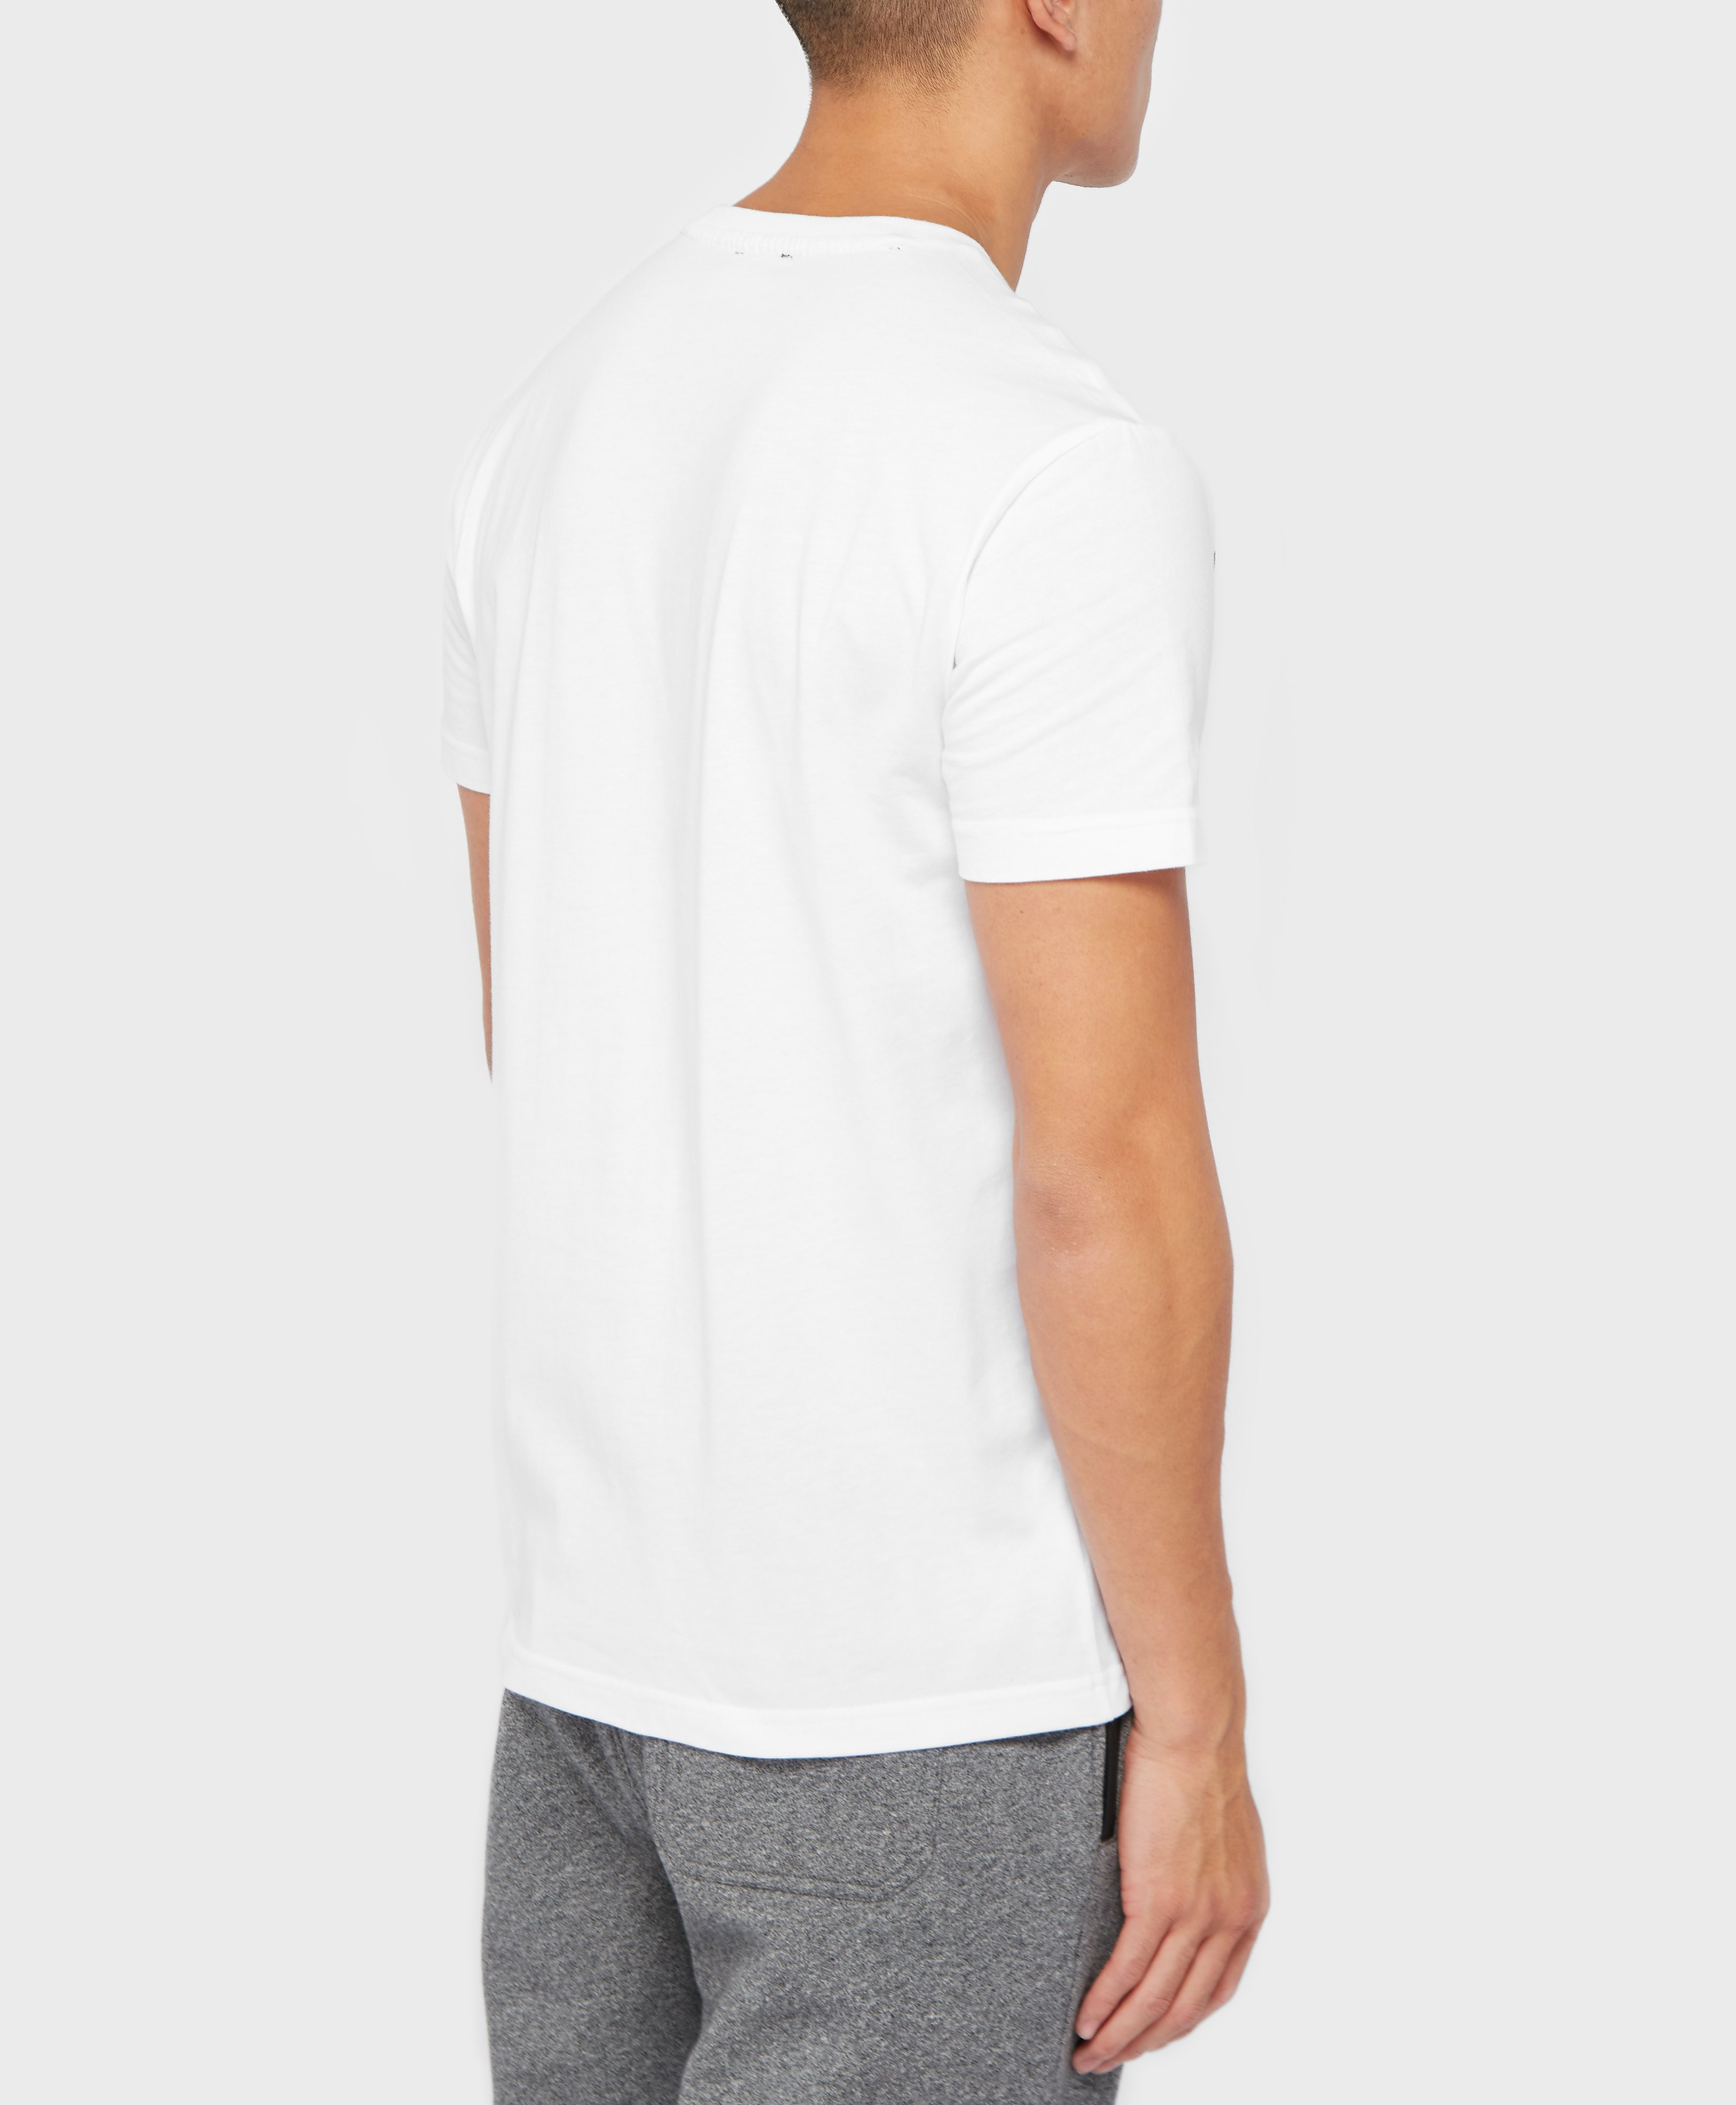 Emporio Armani EA7 Panel Logo T-Shirt - Exclusive